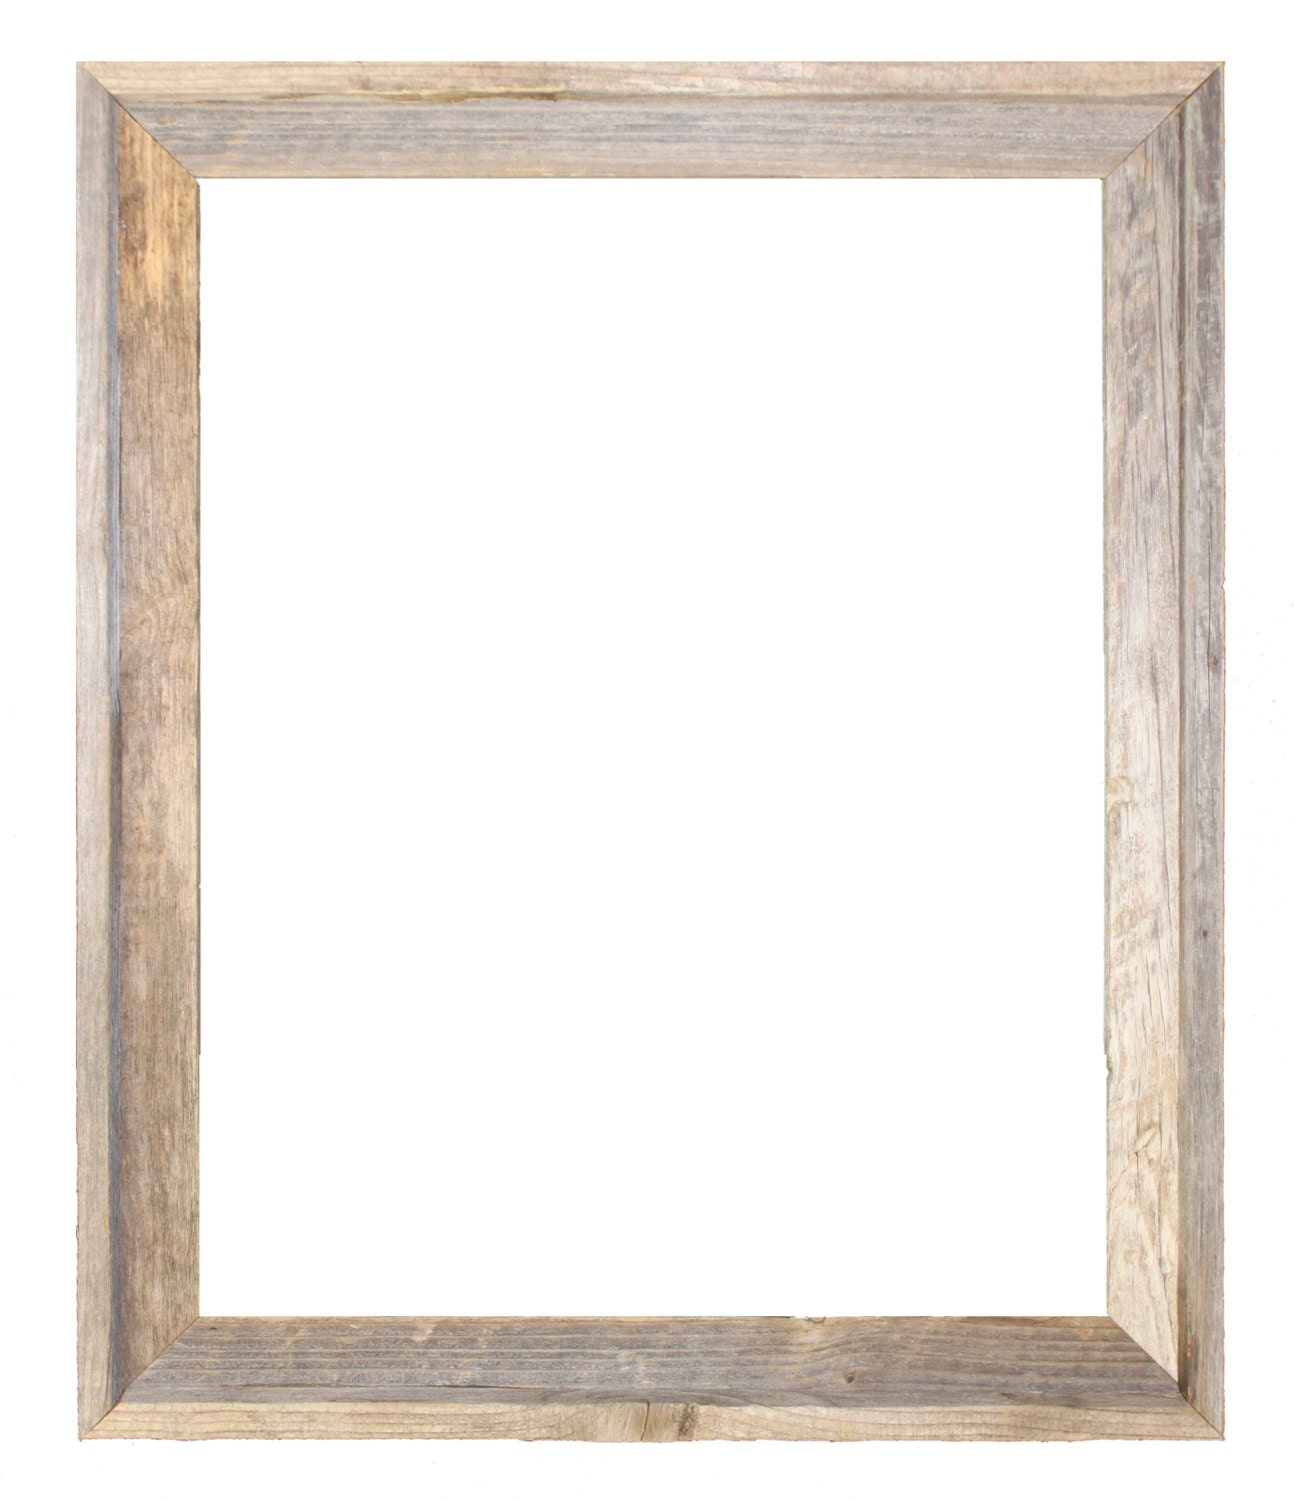 18x24 rustic barn wood open frame by rusticdecorframes on etsy. Black Bedroom Furniture Sets. Home Design Ideas